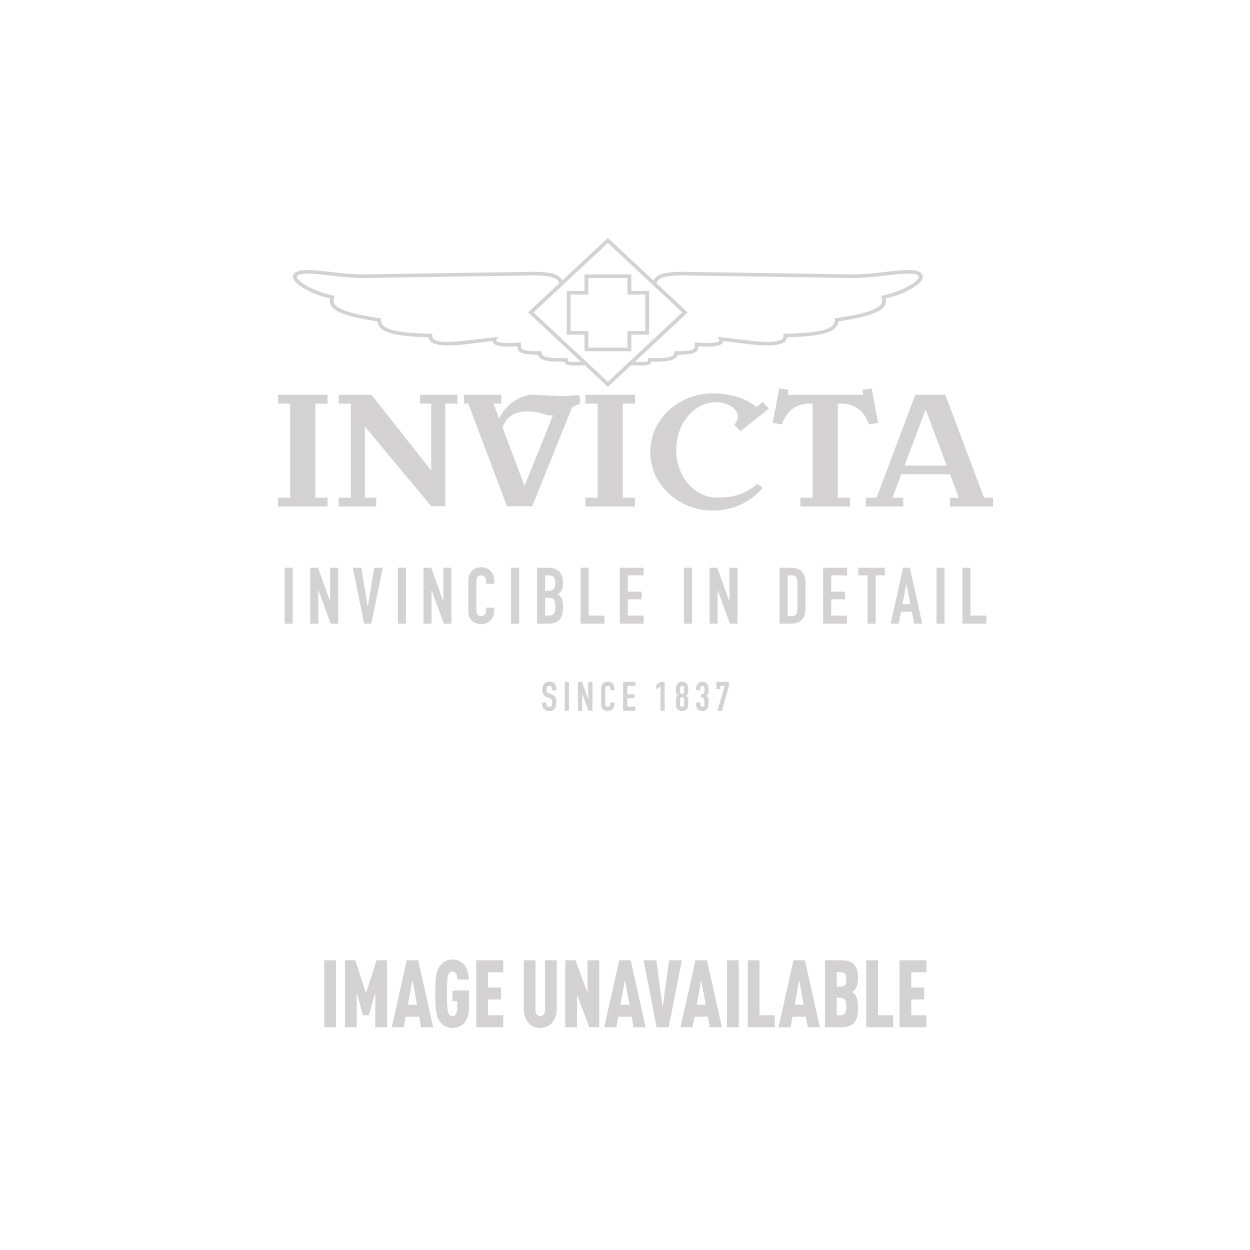 Invicta Coalition Forces Swiss Made Quartz Watch - Rose Gold case Stainless Steel band - Model 12486